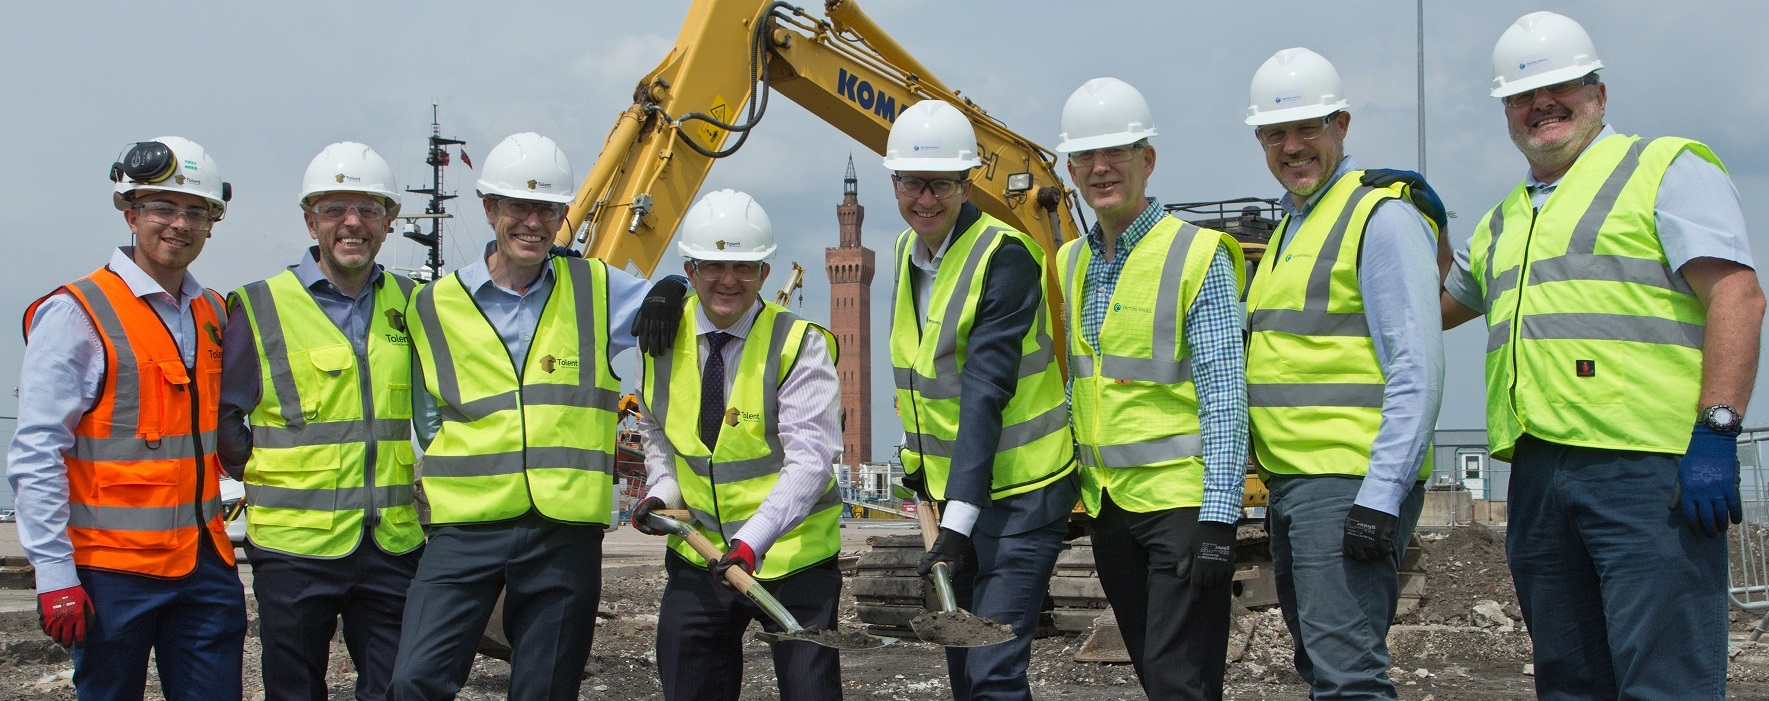 Tolent to build Triton Knoll's new base on Grimsby's Royal Dock